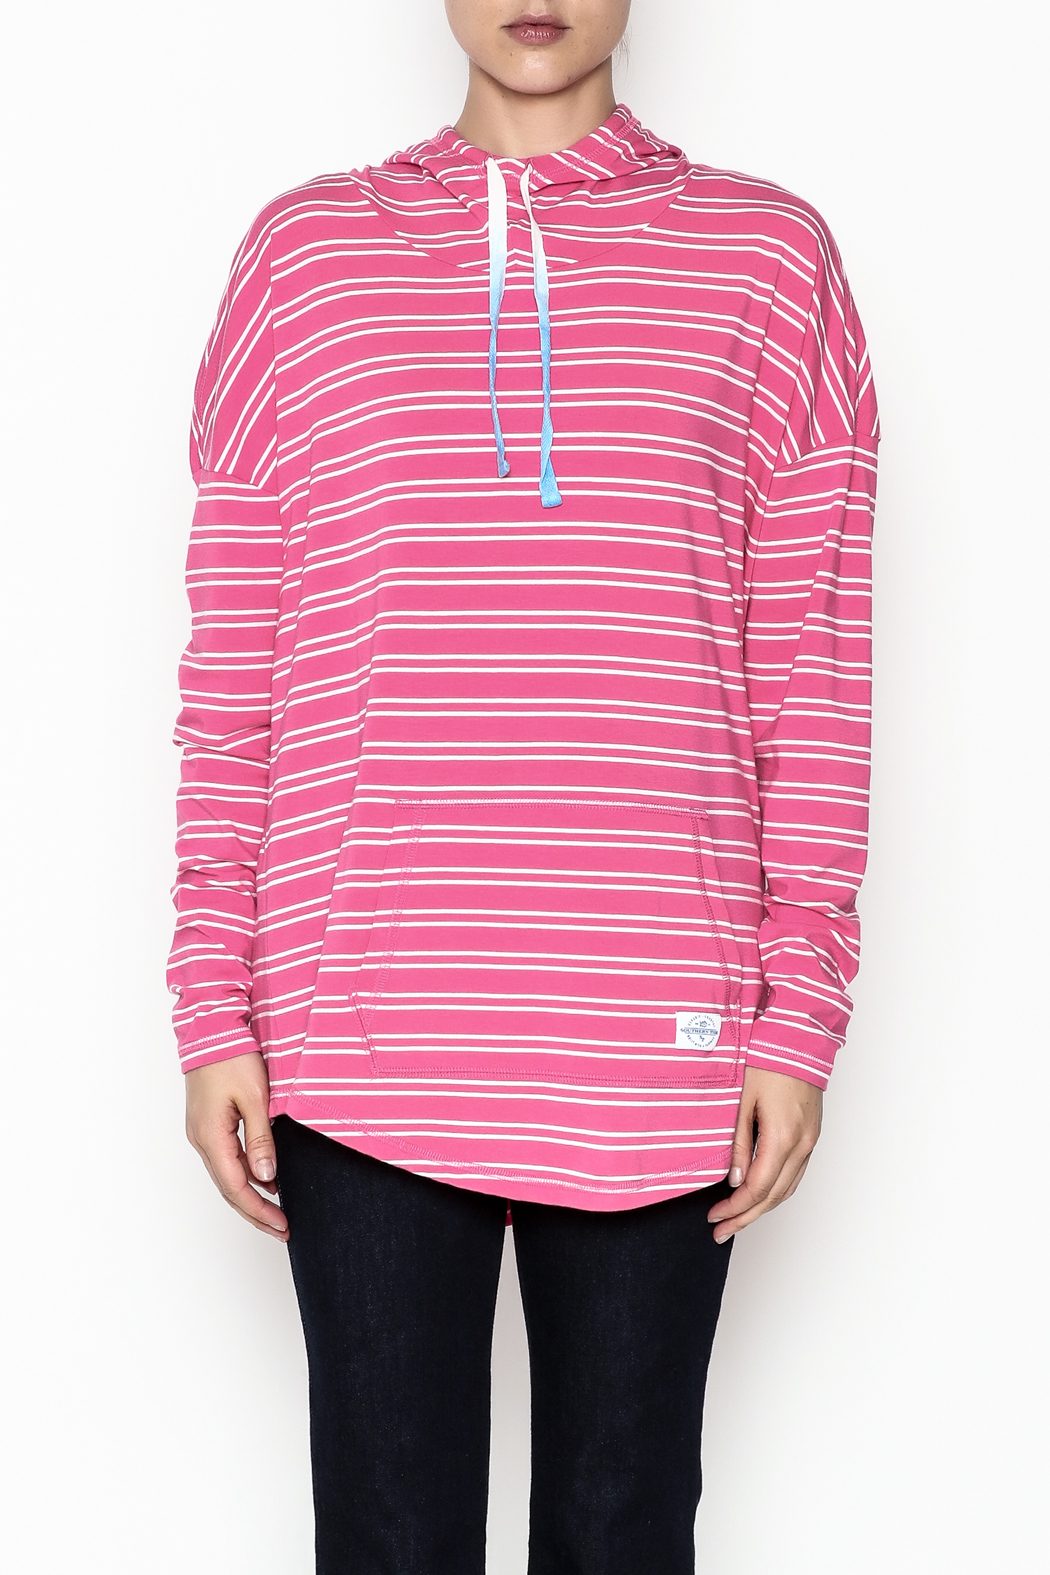 Southern Tide Skipper Pink Stripe Hoodie - Front Full Image